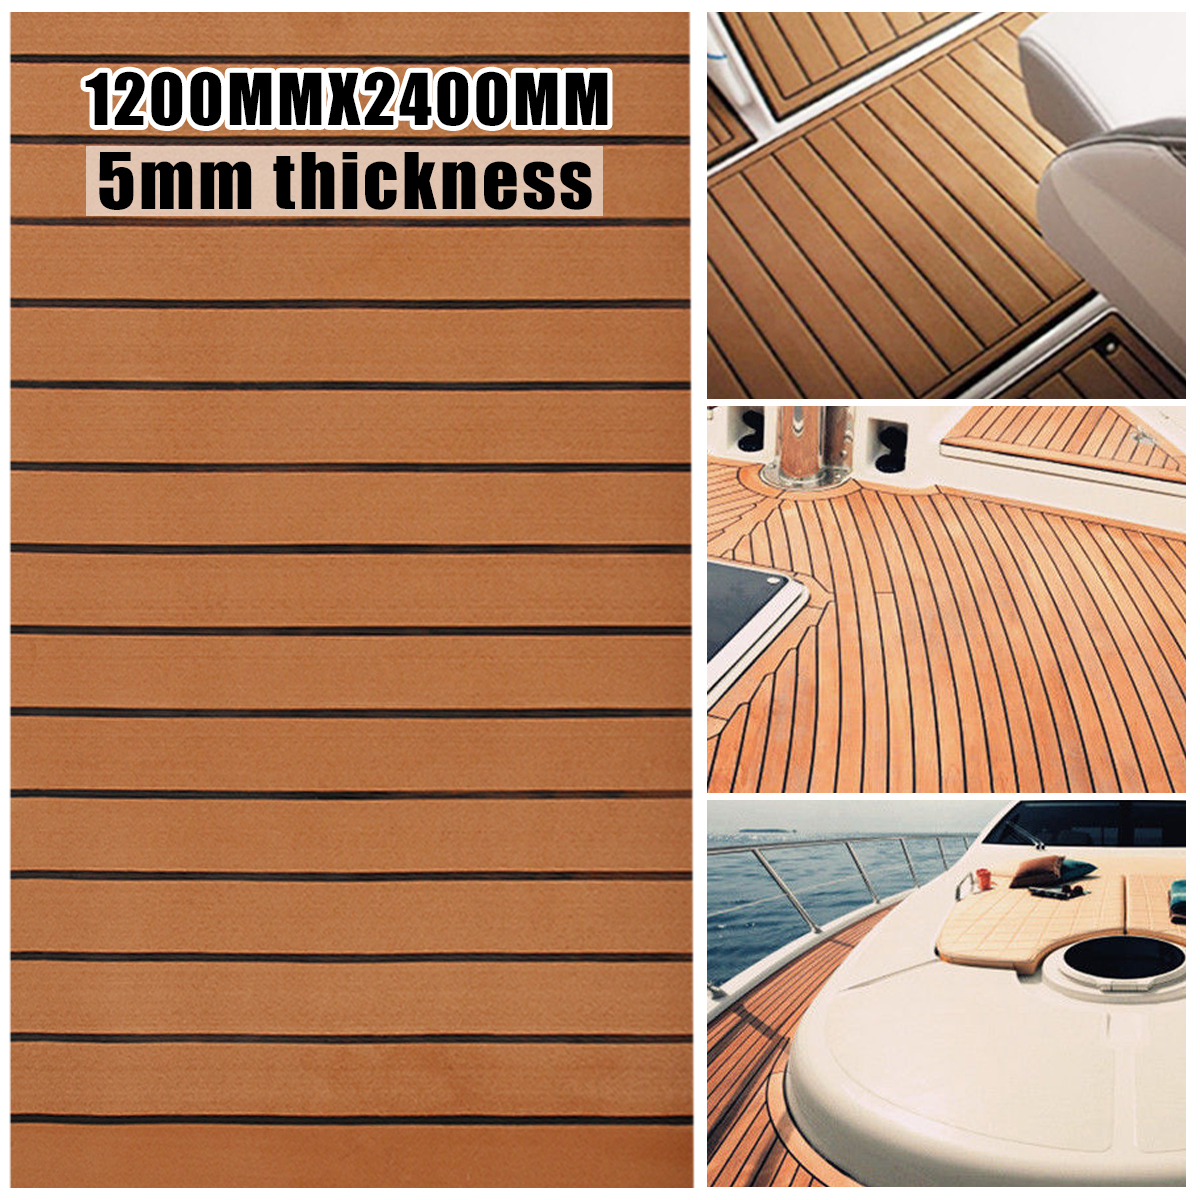 120cmx240cmx5mm Self Adhesive EVA Foam Faux Teak Sheet Boat Yacht Synthetic Teak Decking Brown And Black Wholesale